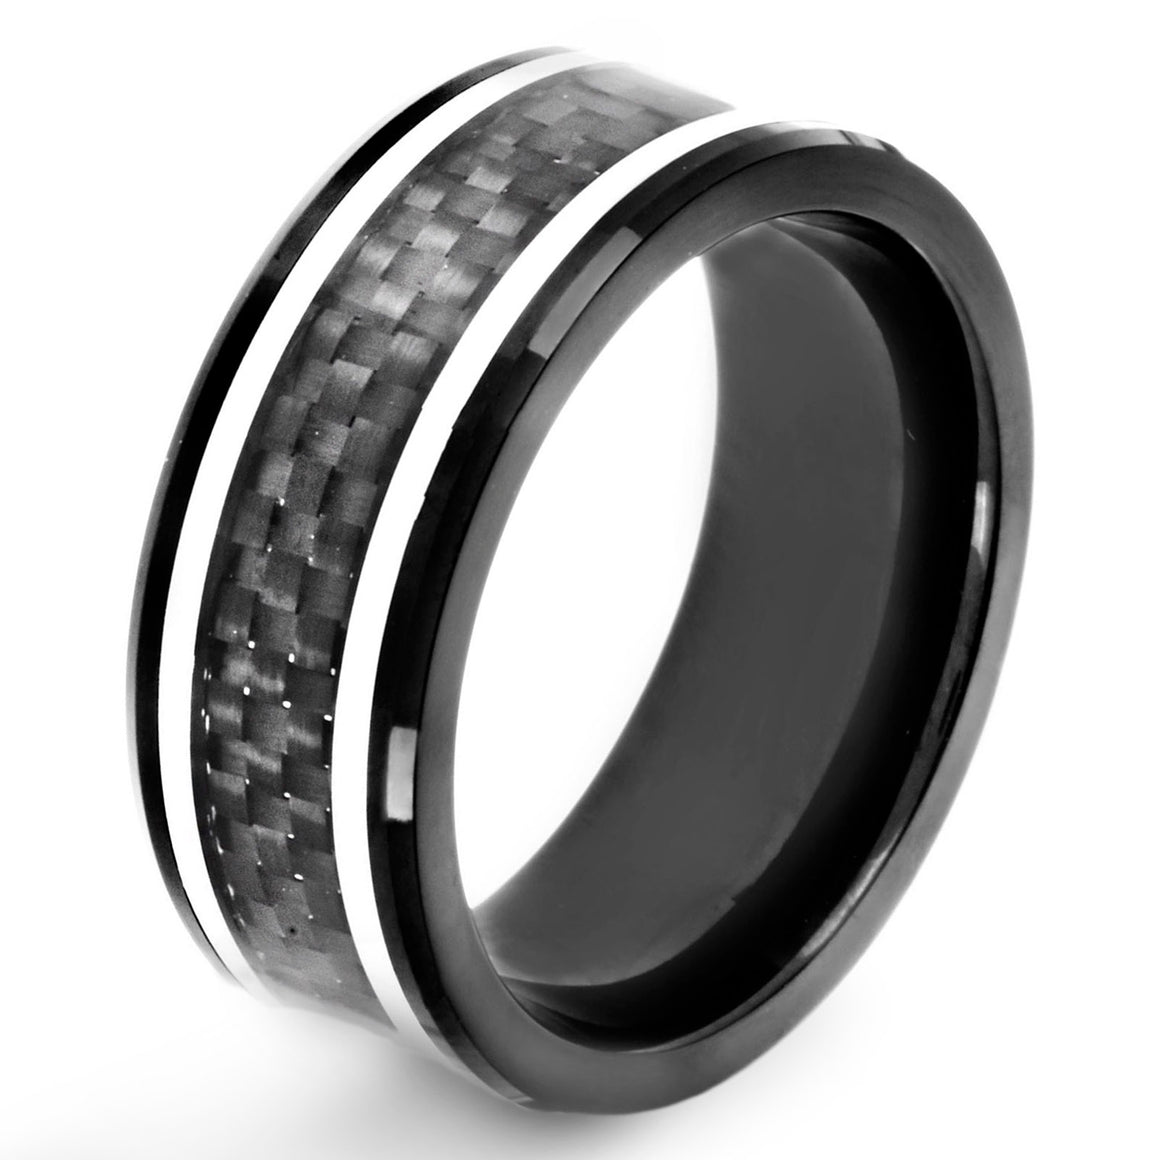 Crucible Black IP Stainless Steel Polished Black Carbon Fiber Inlay Striped Ring